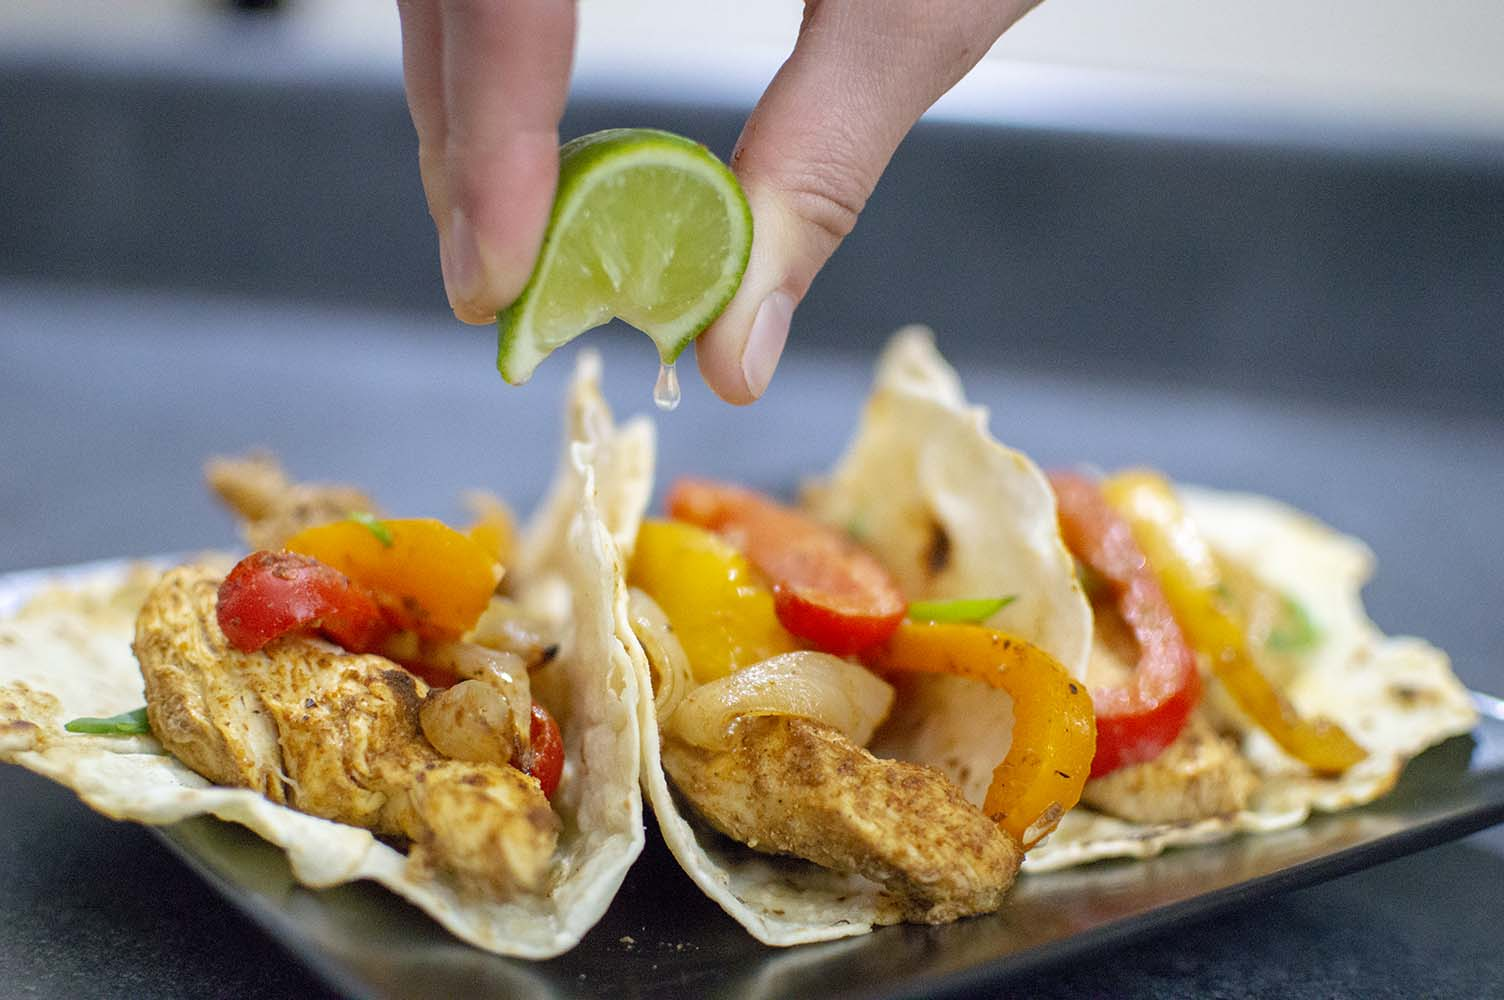 Sheet Pan Chicken Fajitas dished up on tortillas and ready to eat